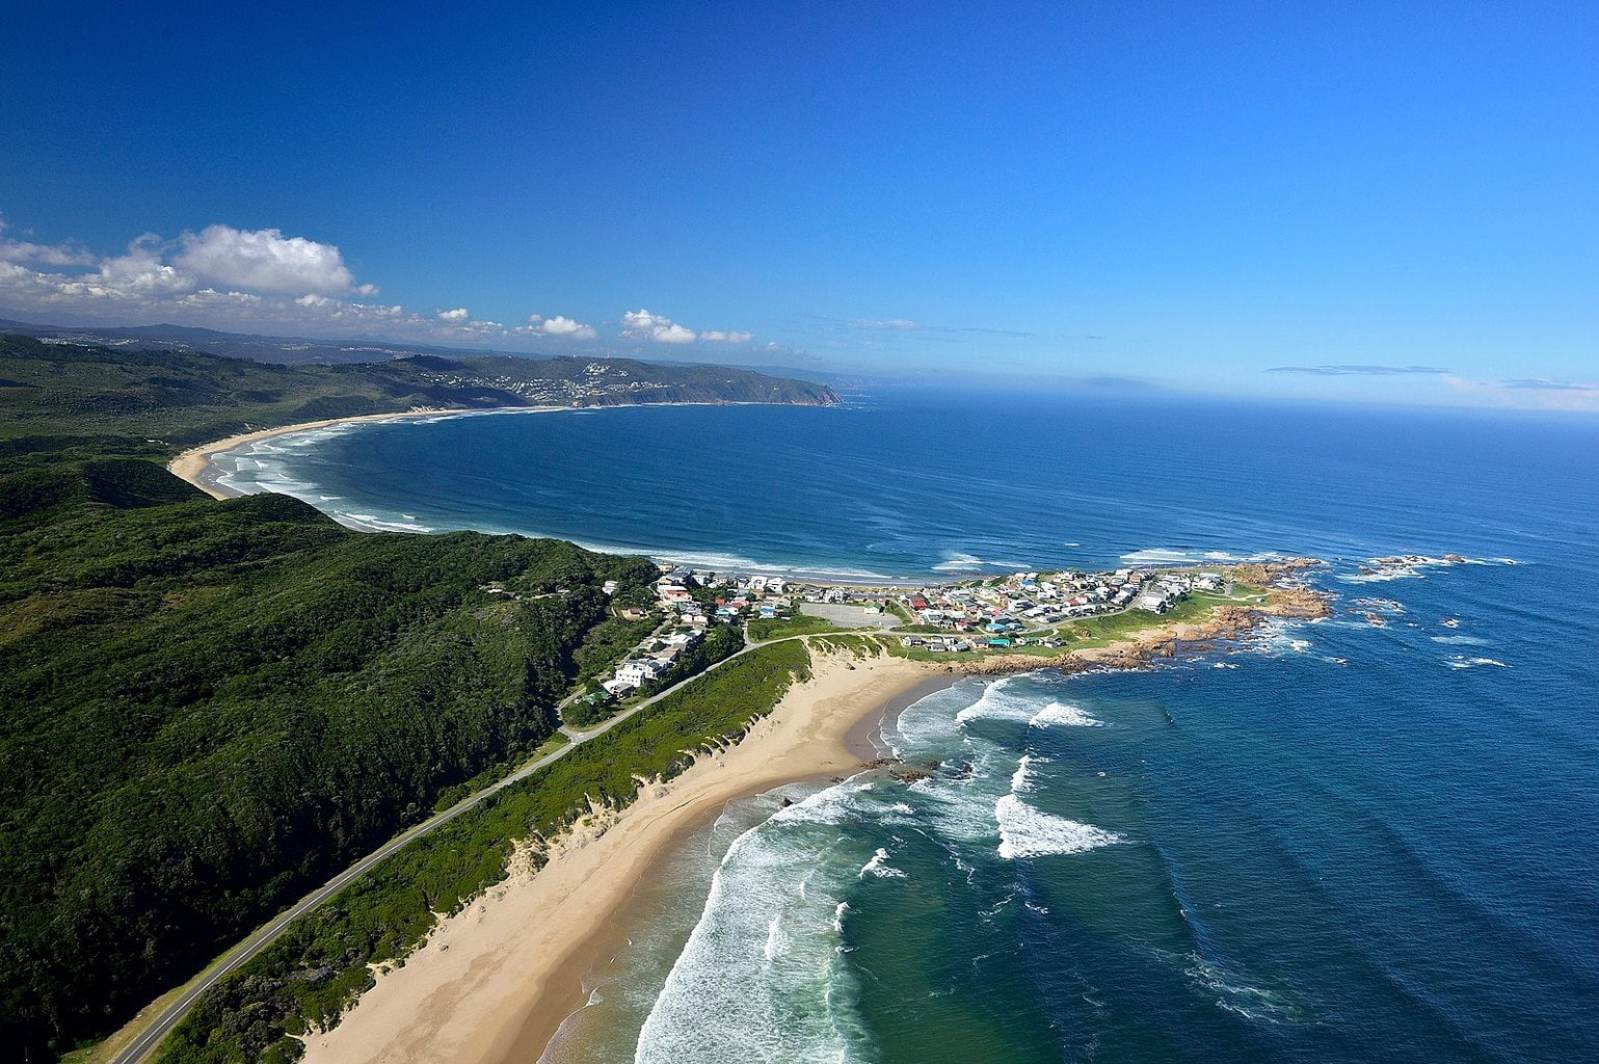 Buffels Bay and Brenton-on-Sea from the air